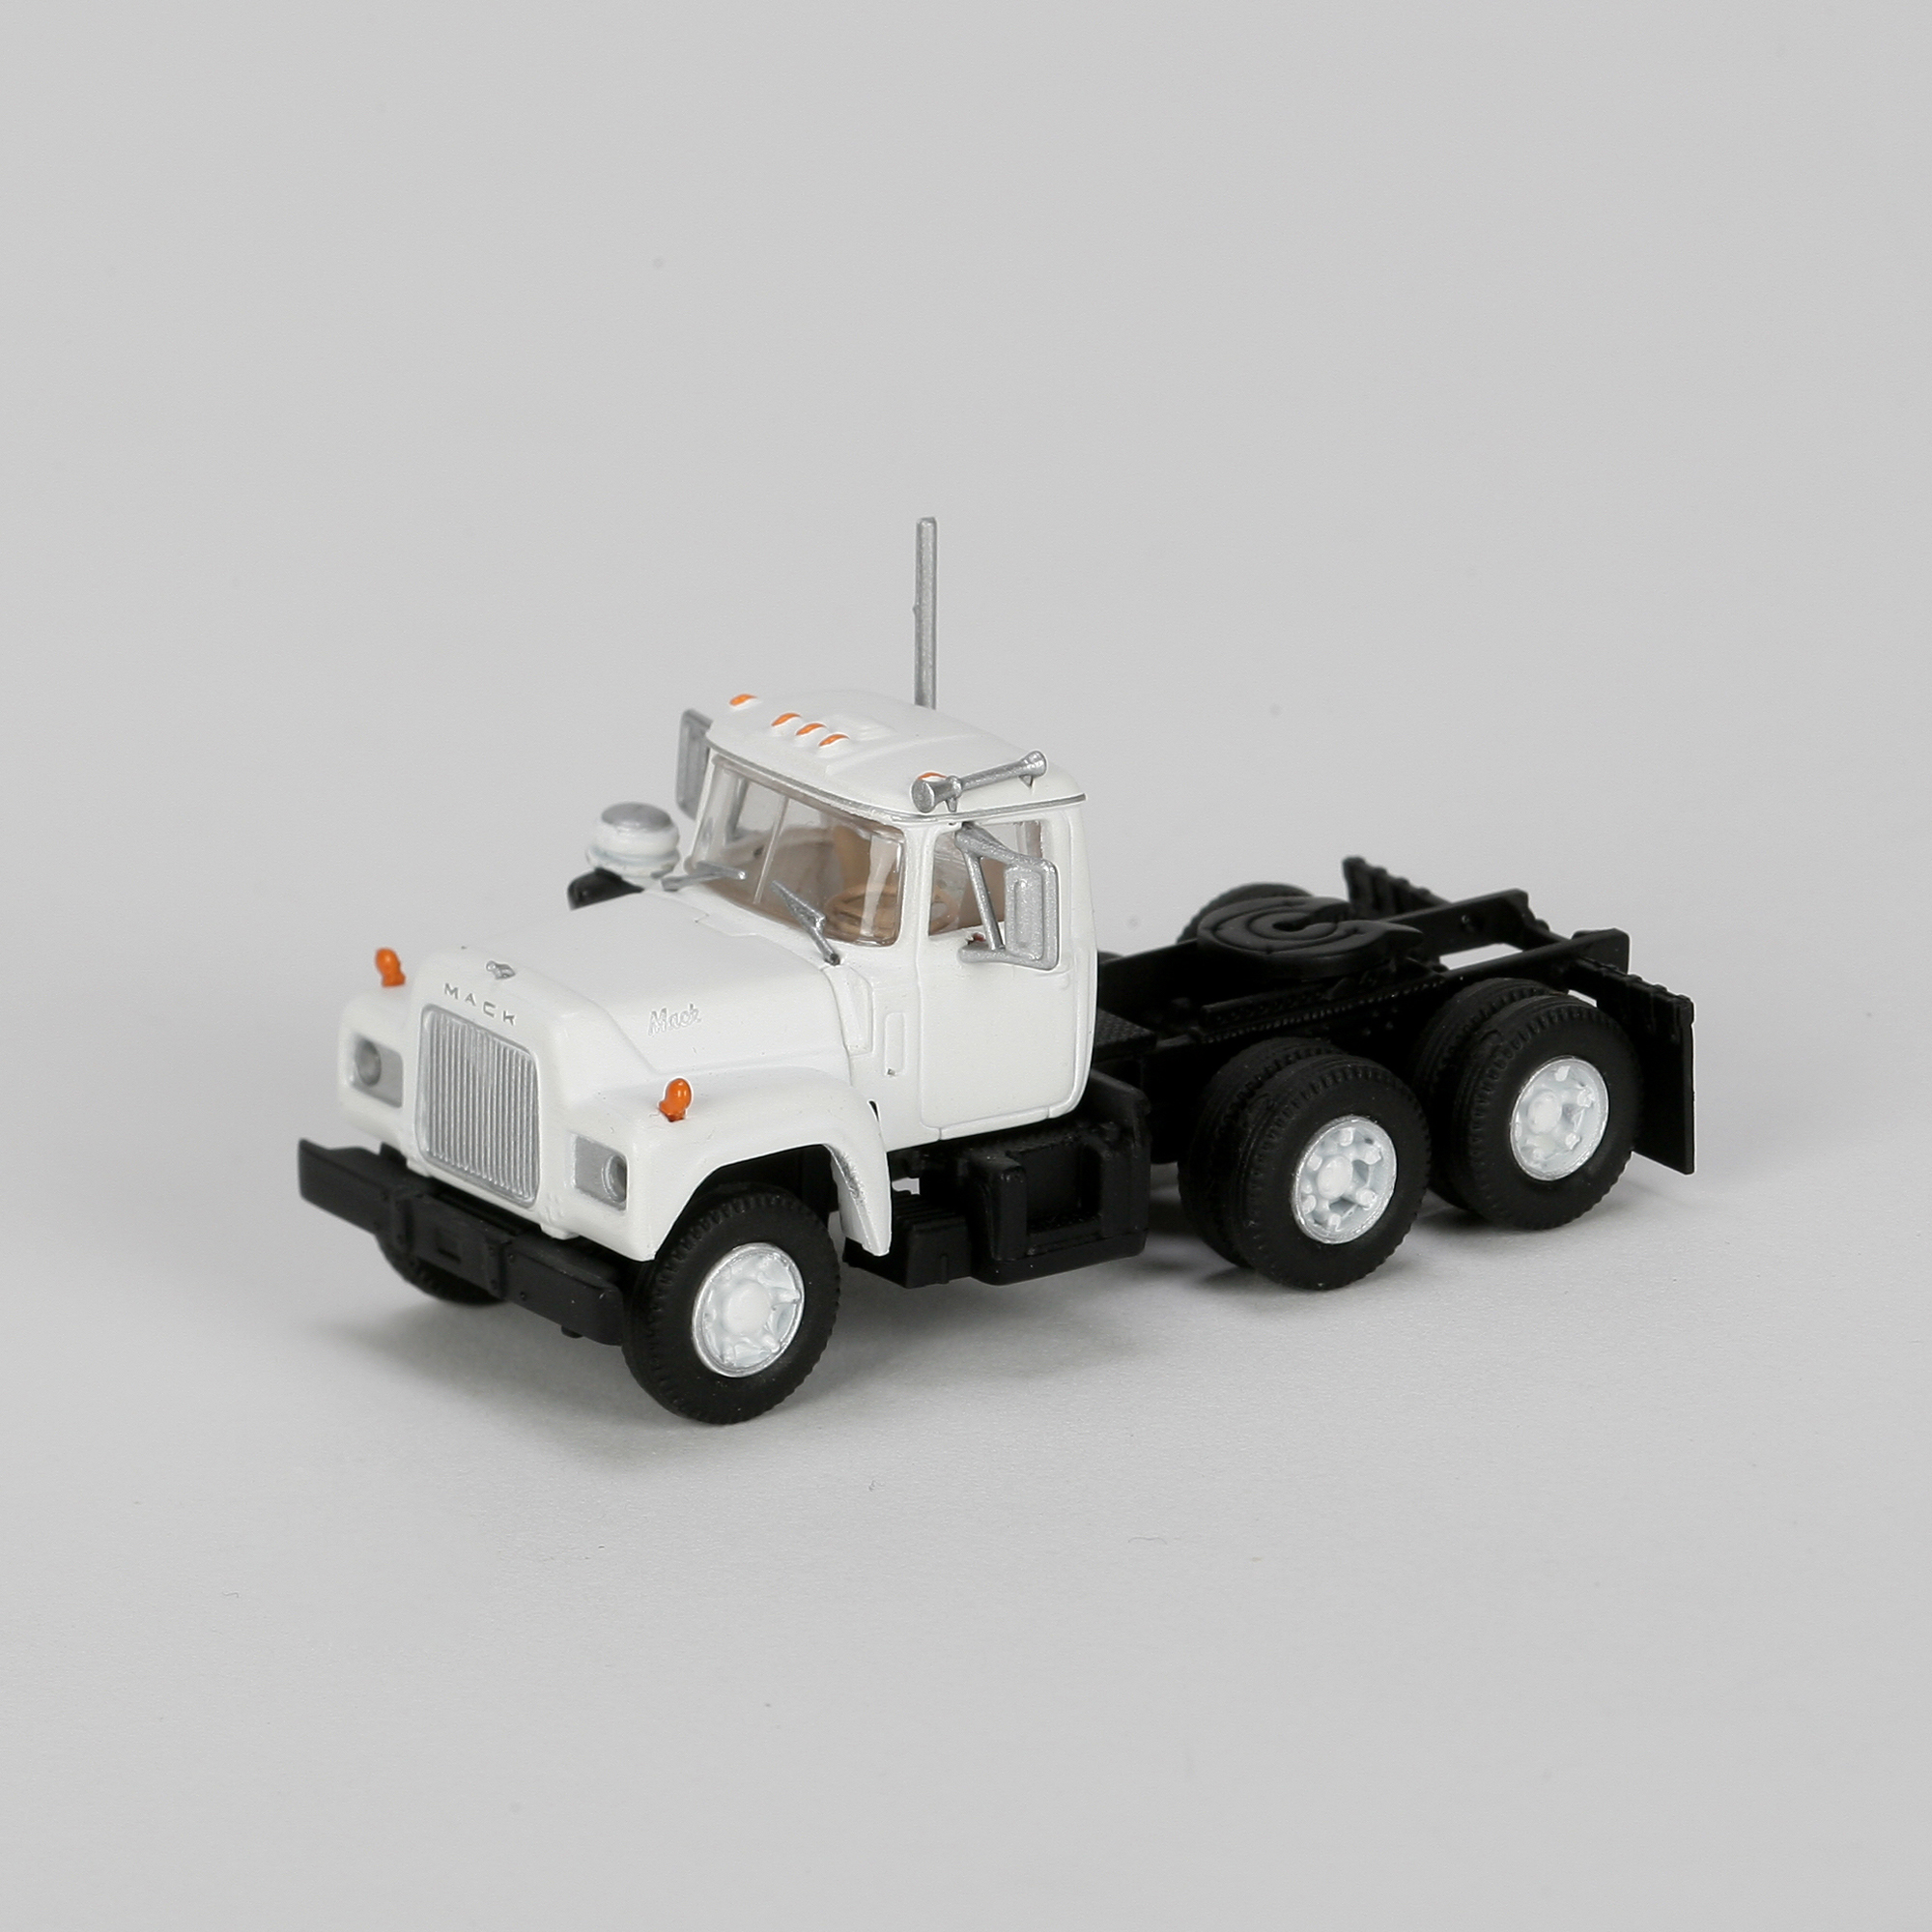 Athearn N Scale 3 Axle Tractor : Ho rtr mack r tractor w axle white ath athearn